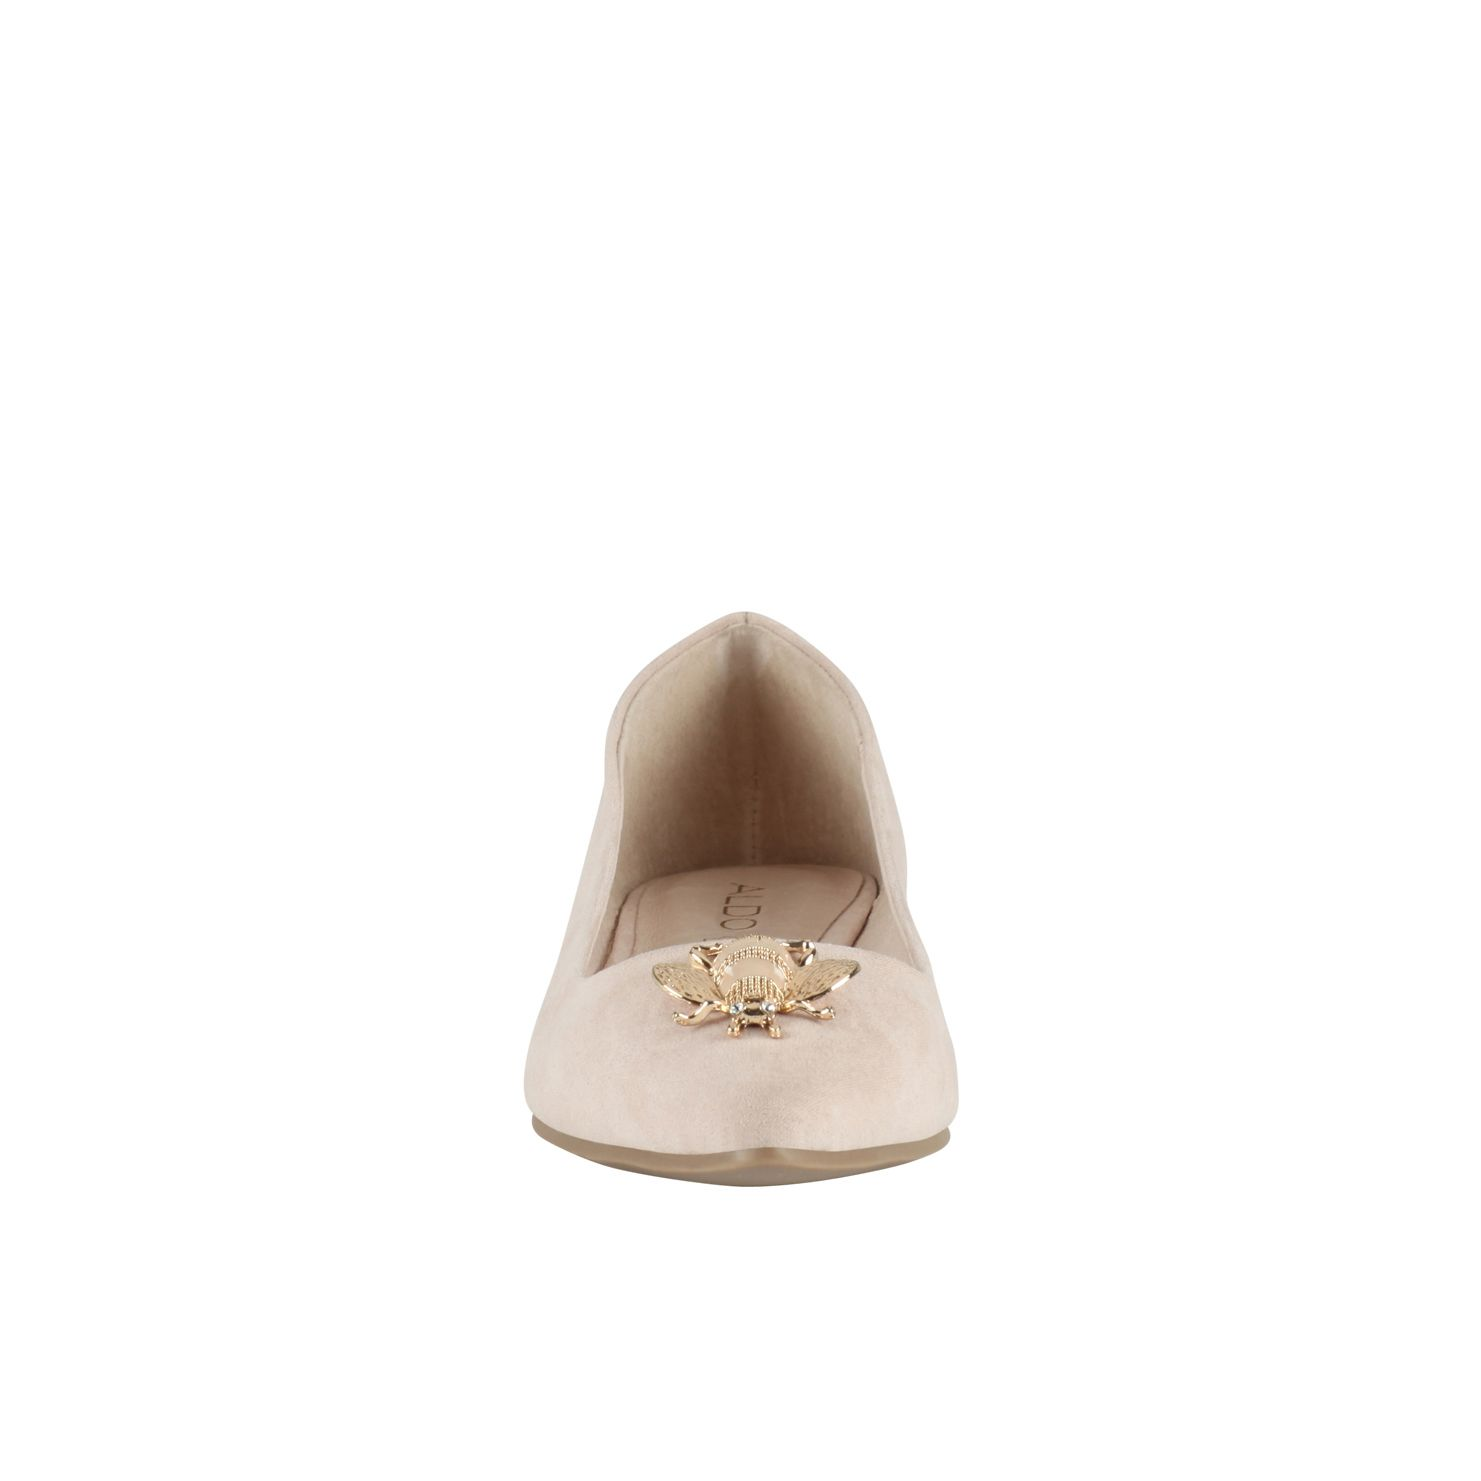 Gwoeng almond toe ballerina shoes